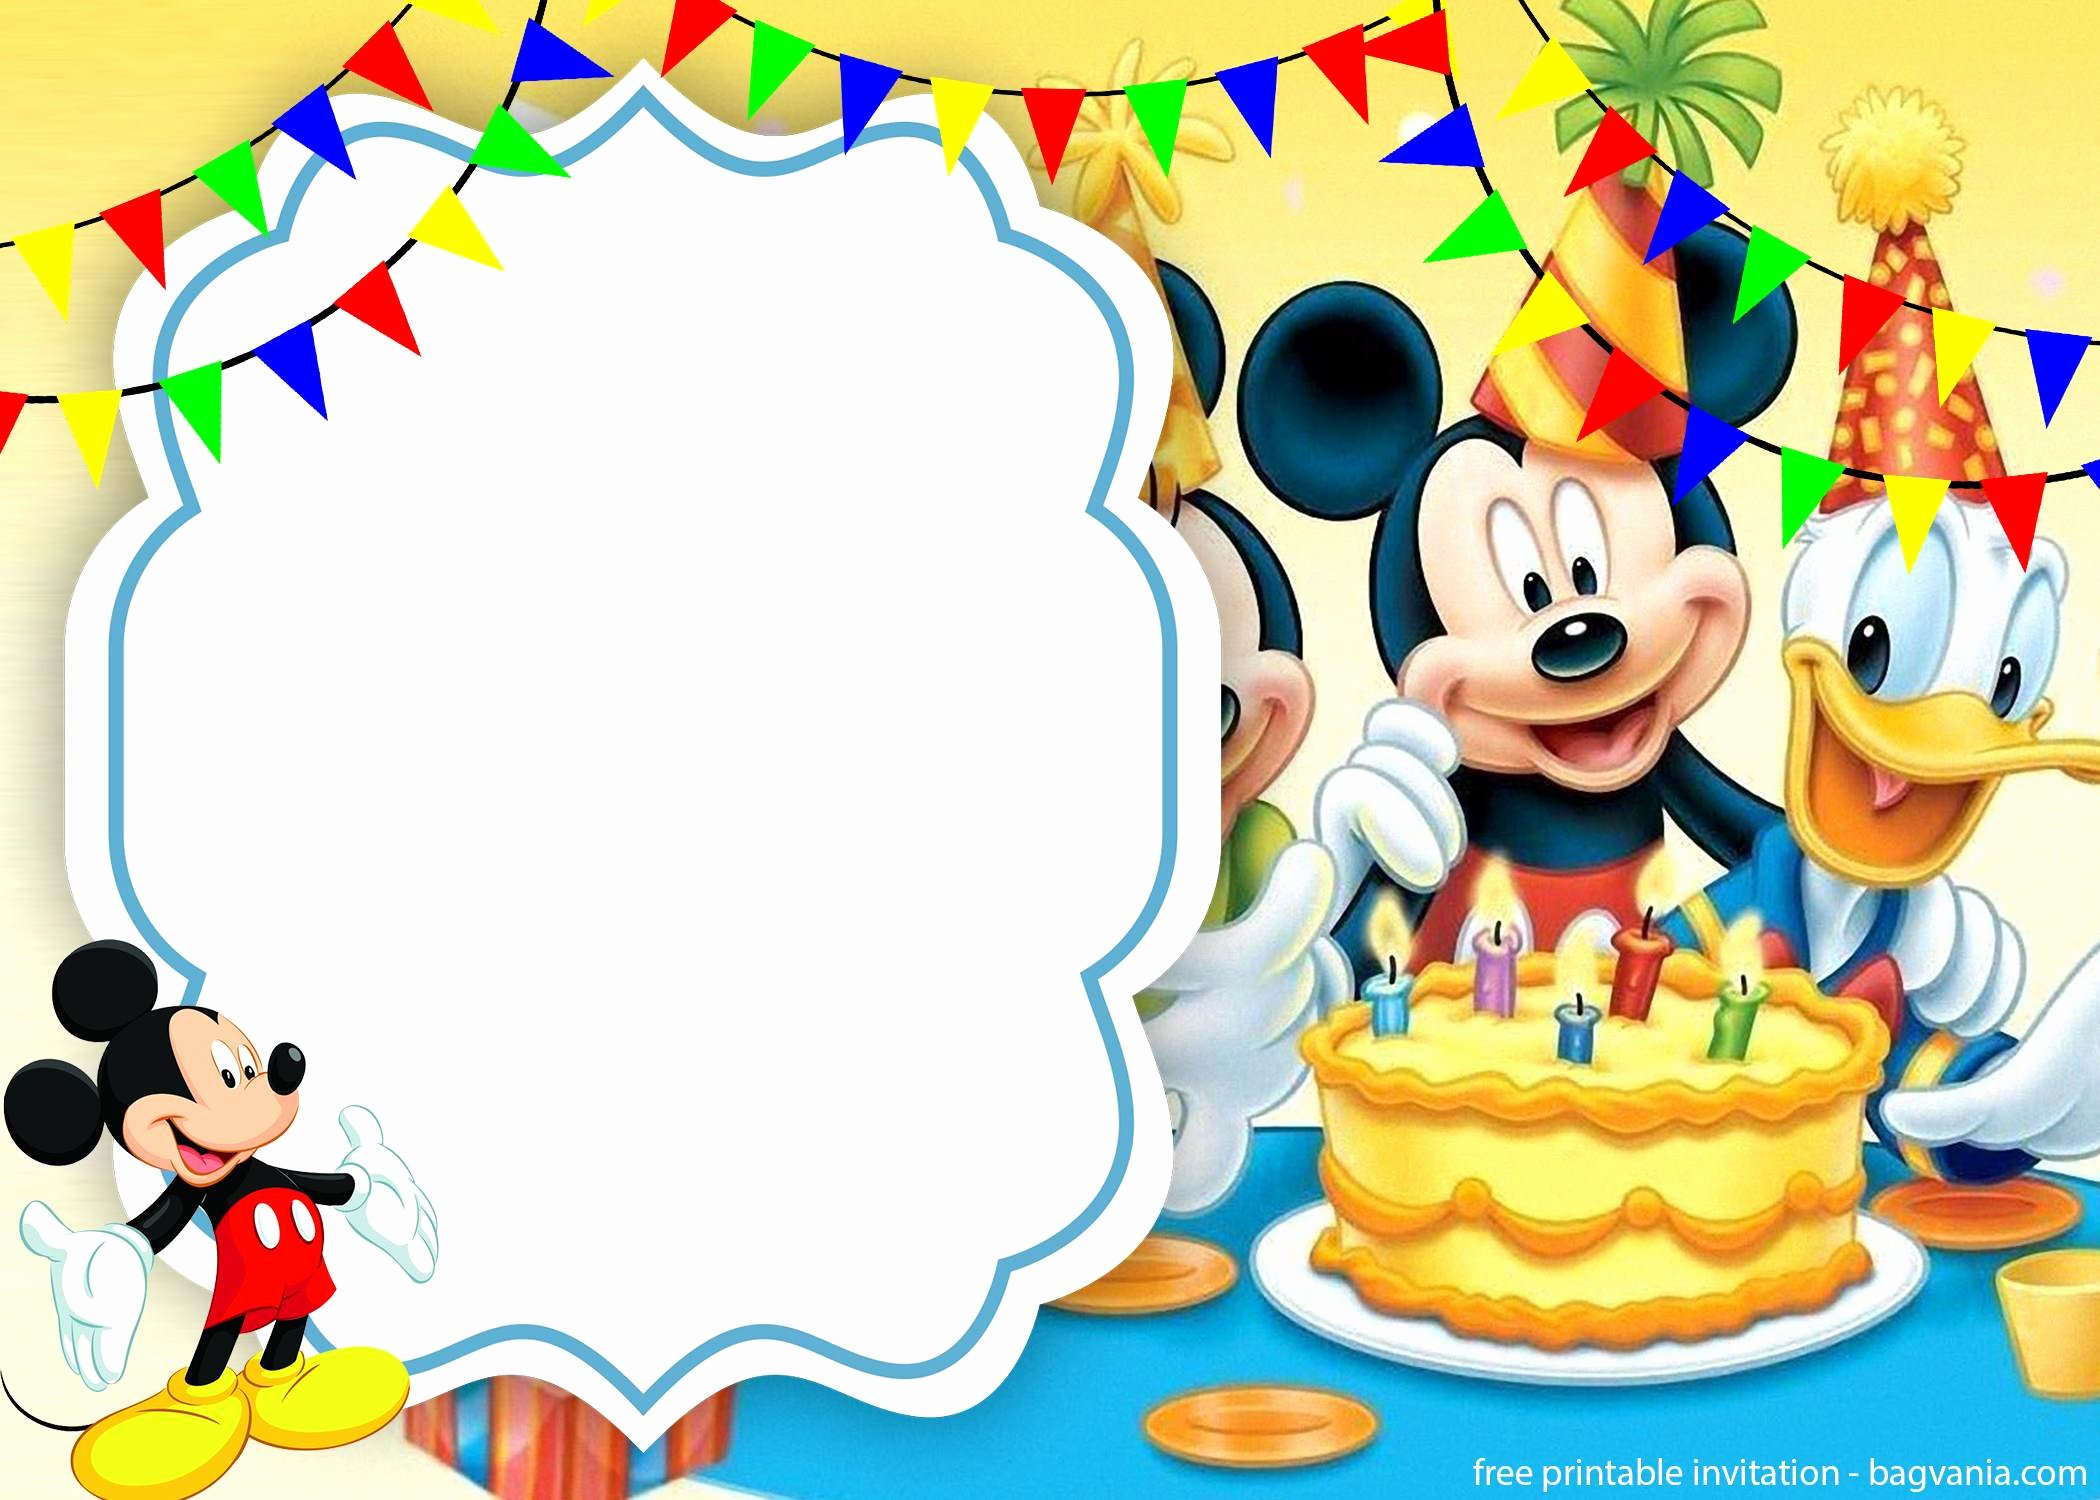 Mickey Mouse Cake Template Free Elegant Free Cute Mickey Mouse Cake Invitation Template – Free